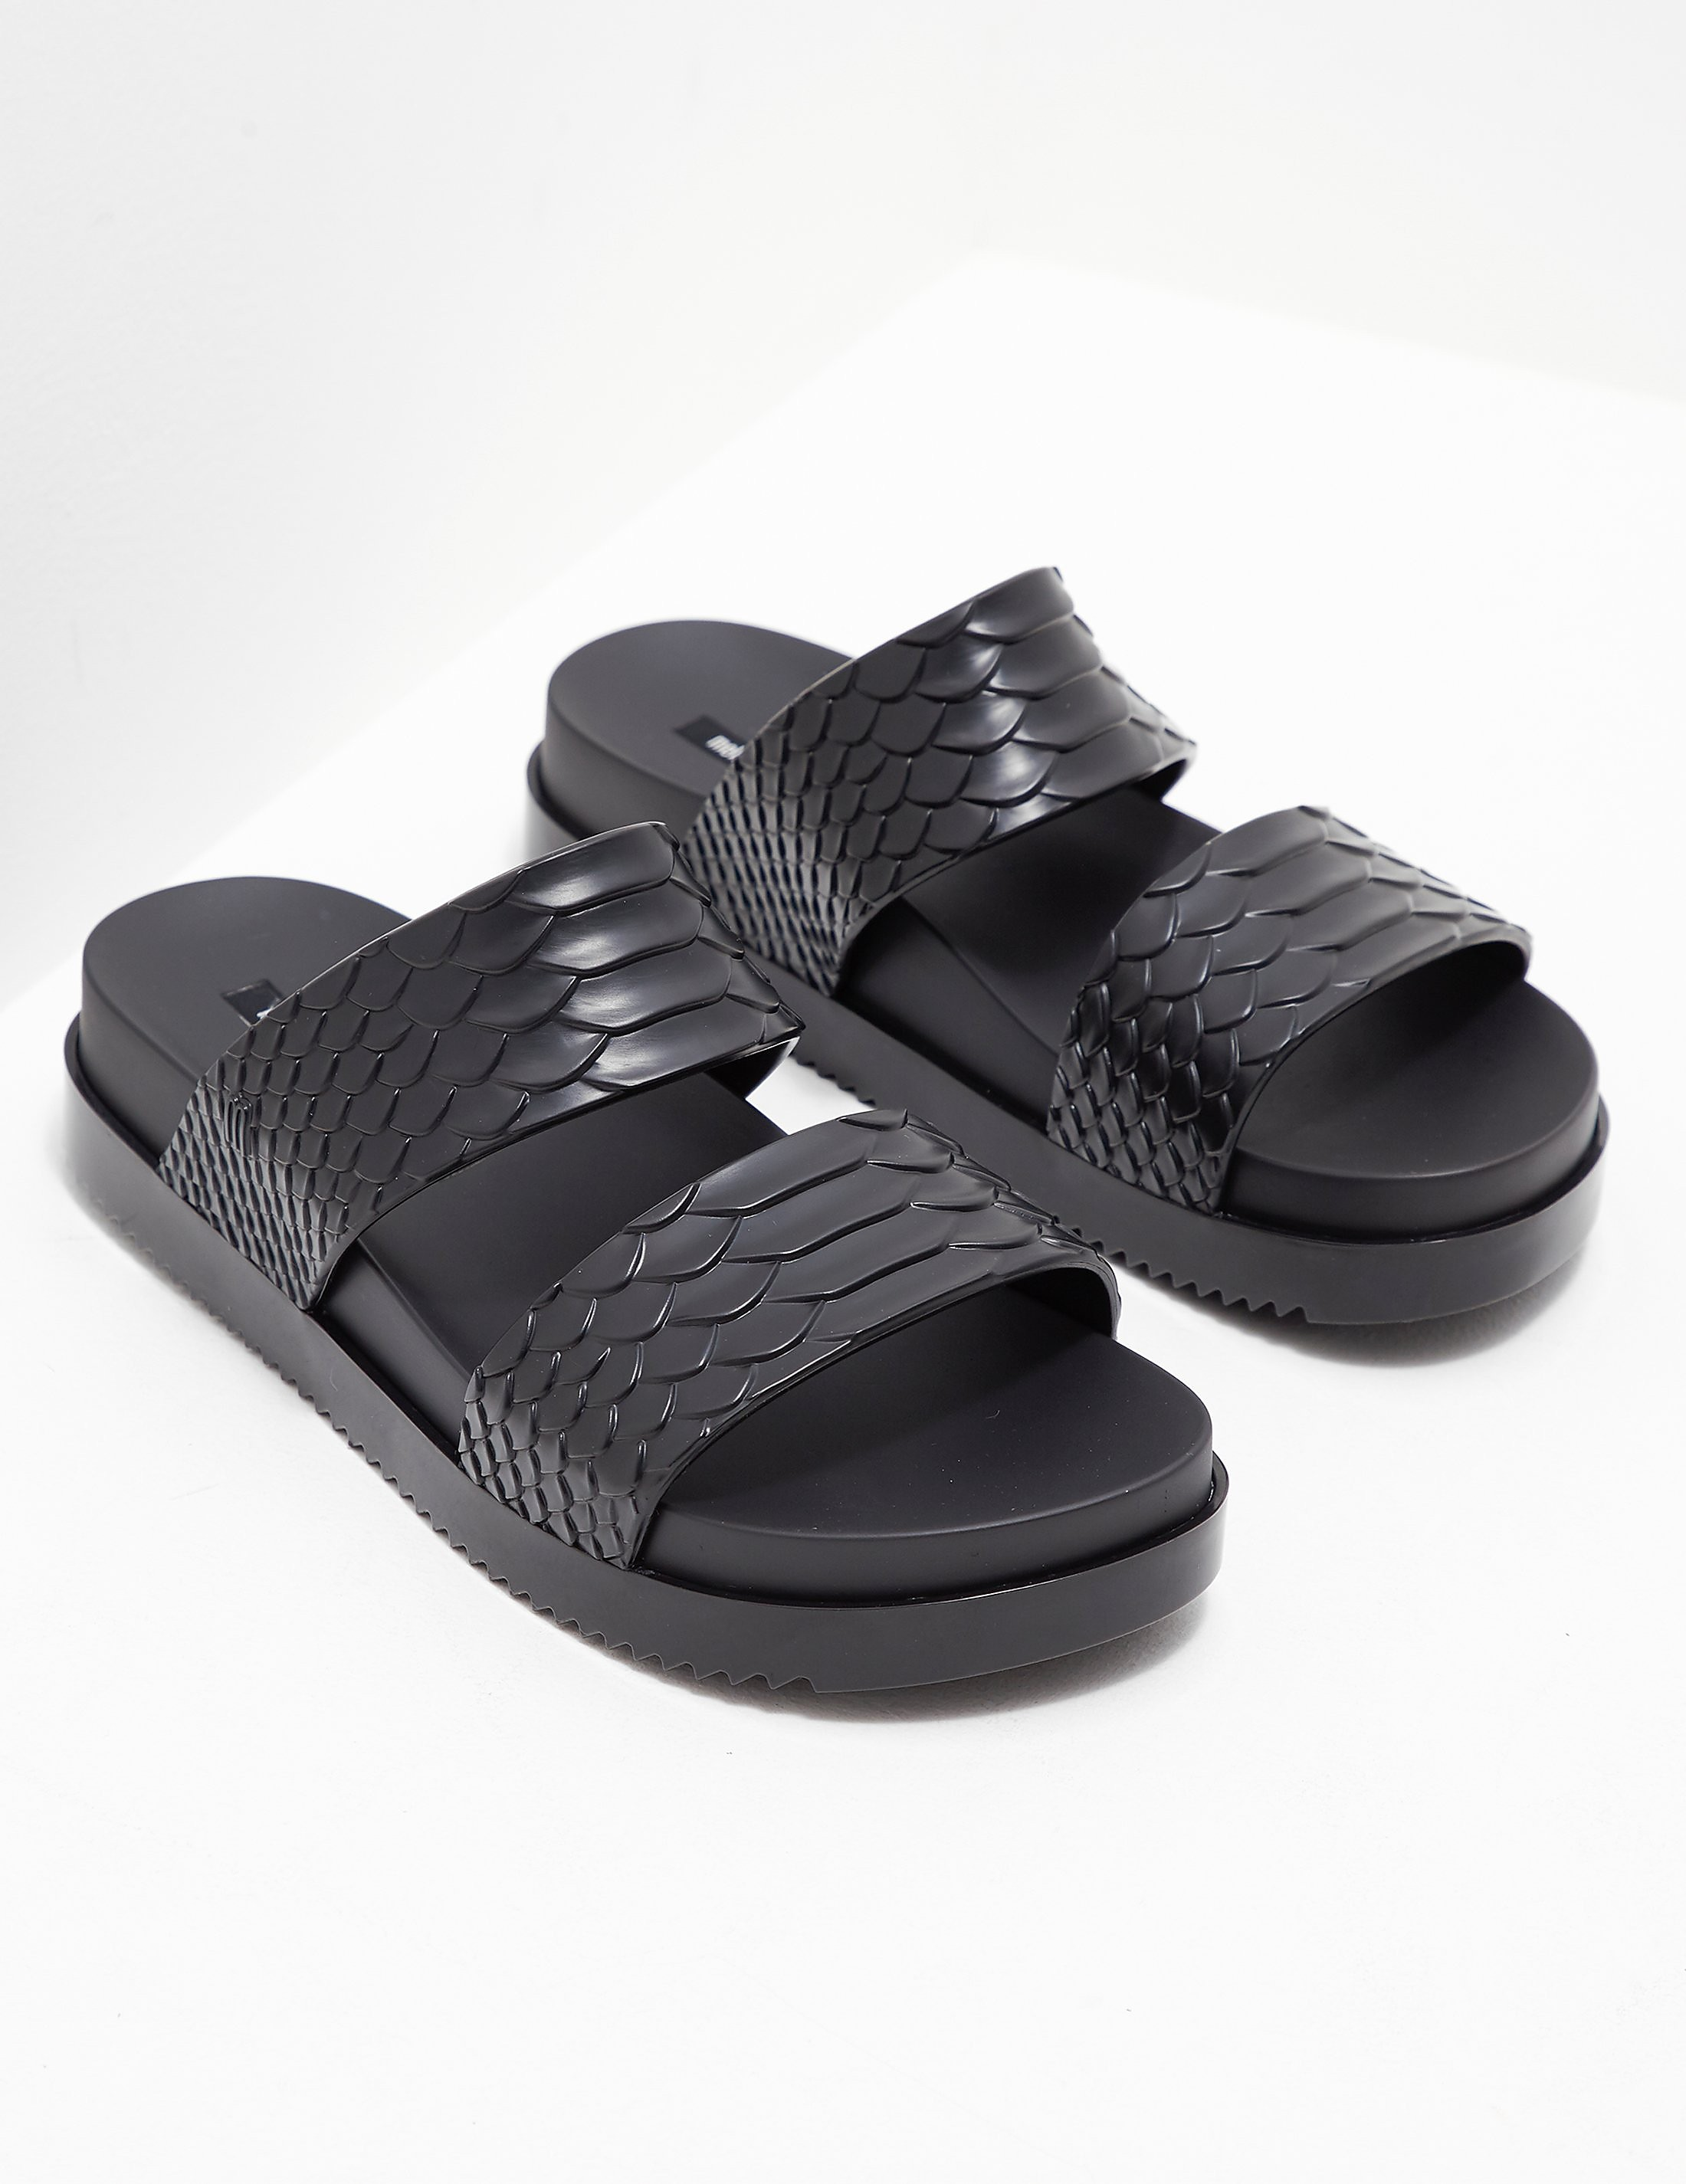 Melissa x Baja East Python Slides - Online Exclusive